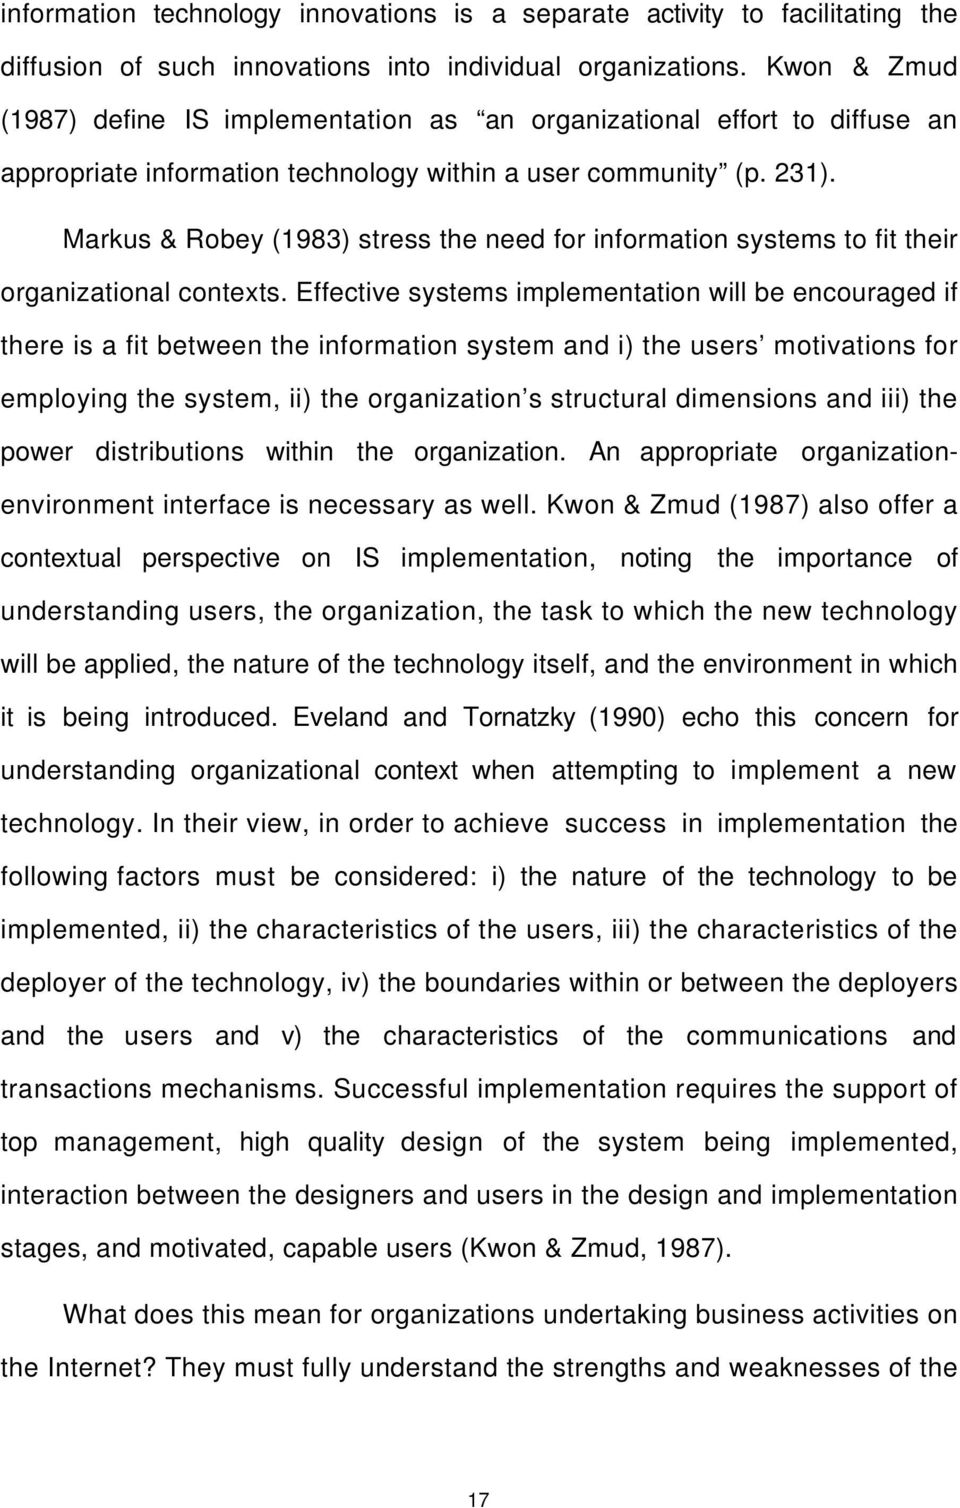 Markus & Robey (1983) stress the need for information systems to fit their organizational contexts.